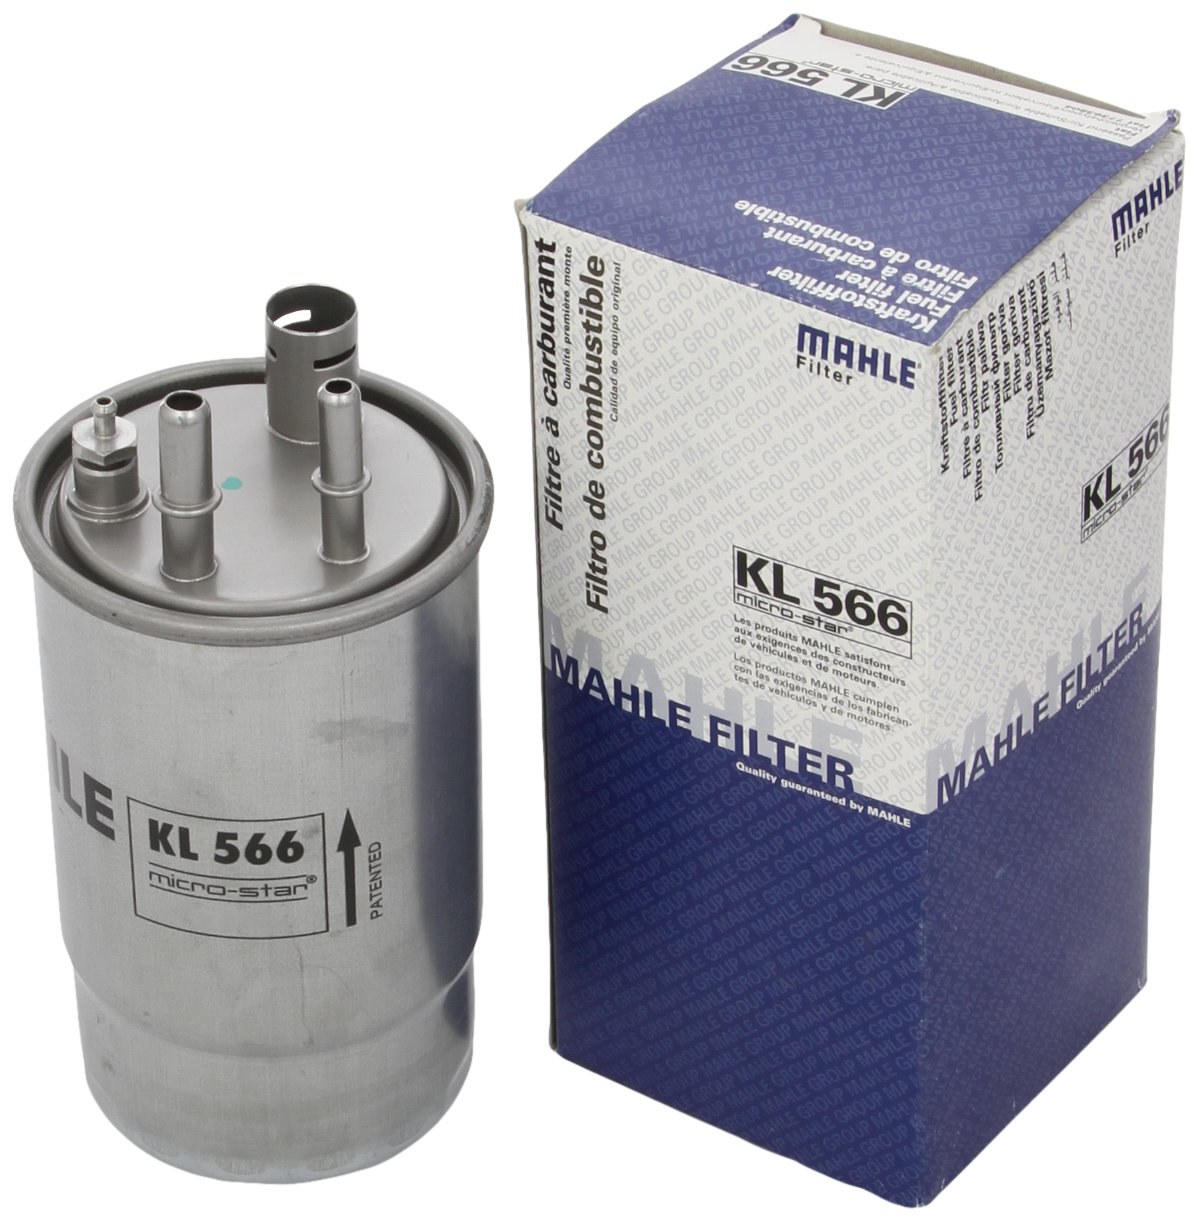 Knecht KL 566 Filtro Motore Mahle Aftermarket GmbH